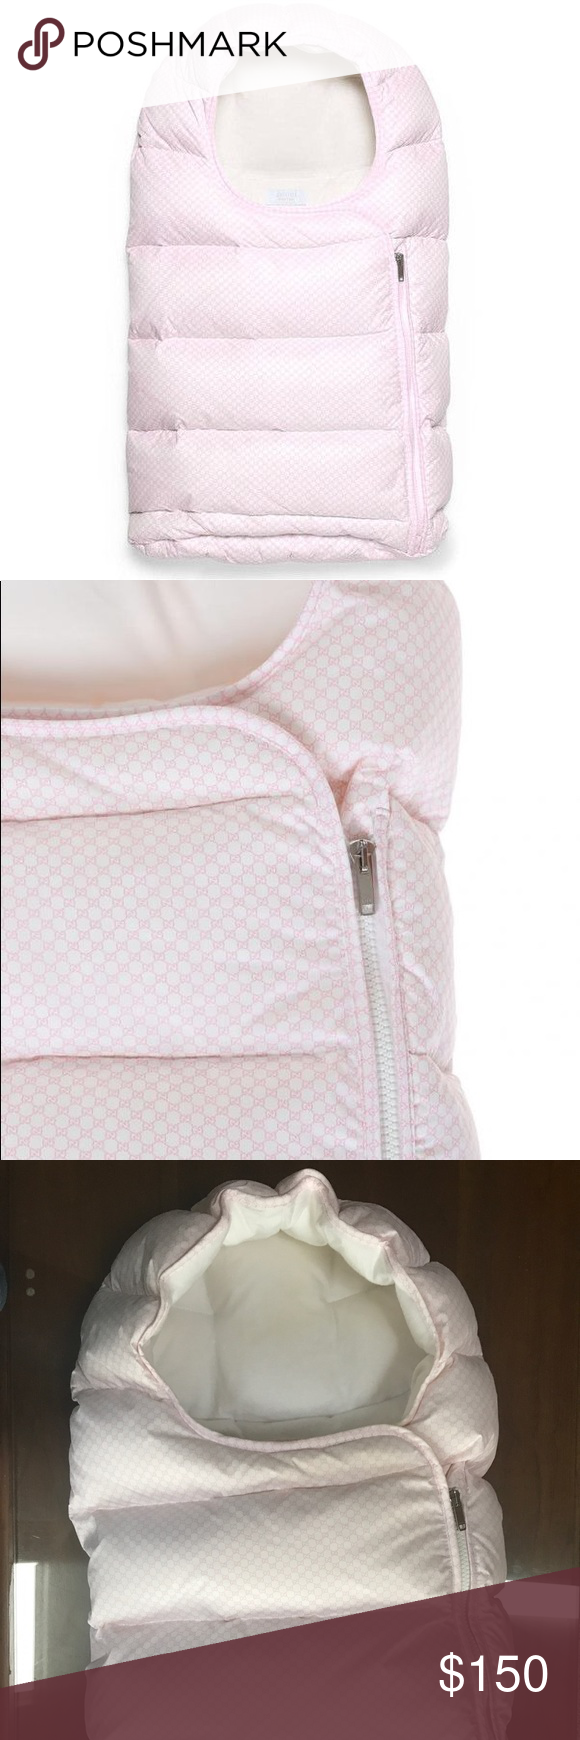 half off 8804d cc255 Gucci Baby Sleeping Bag::Great Condition$450 Value 100 ...